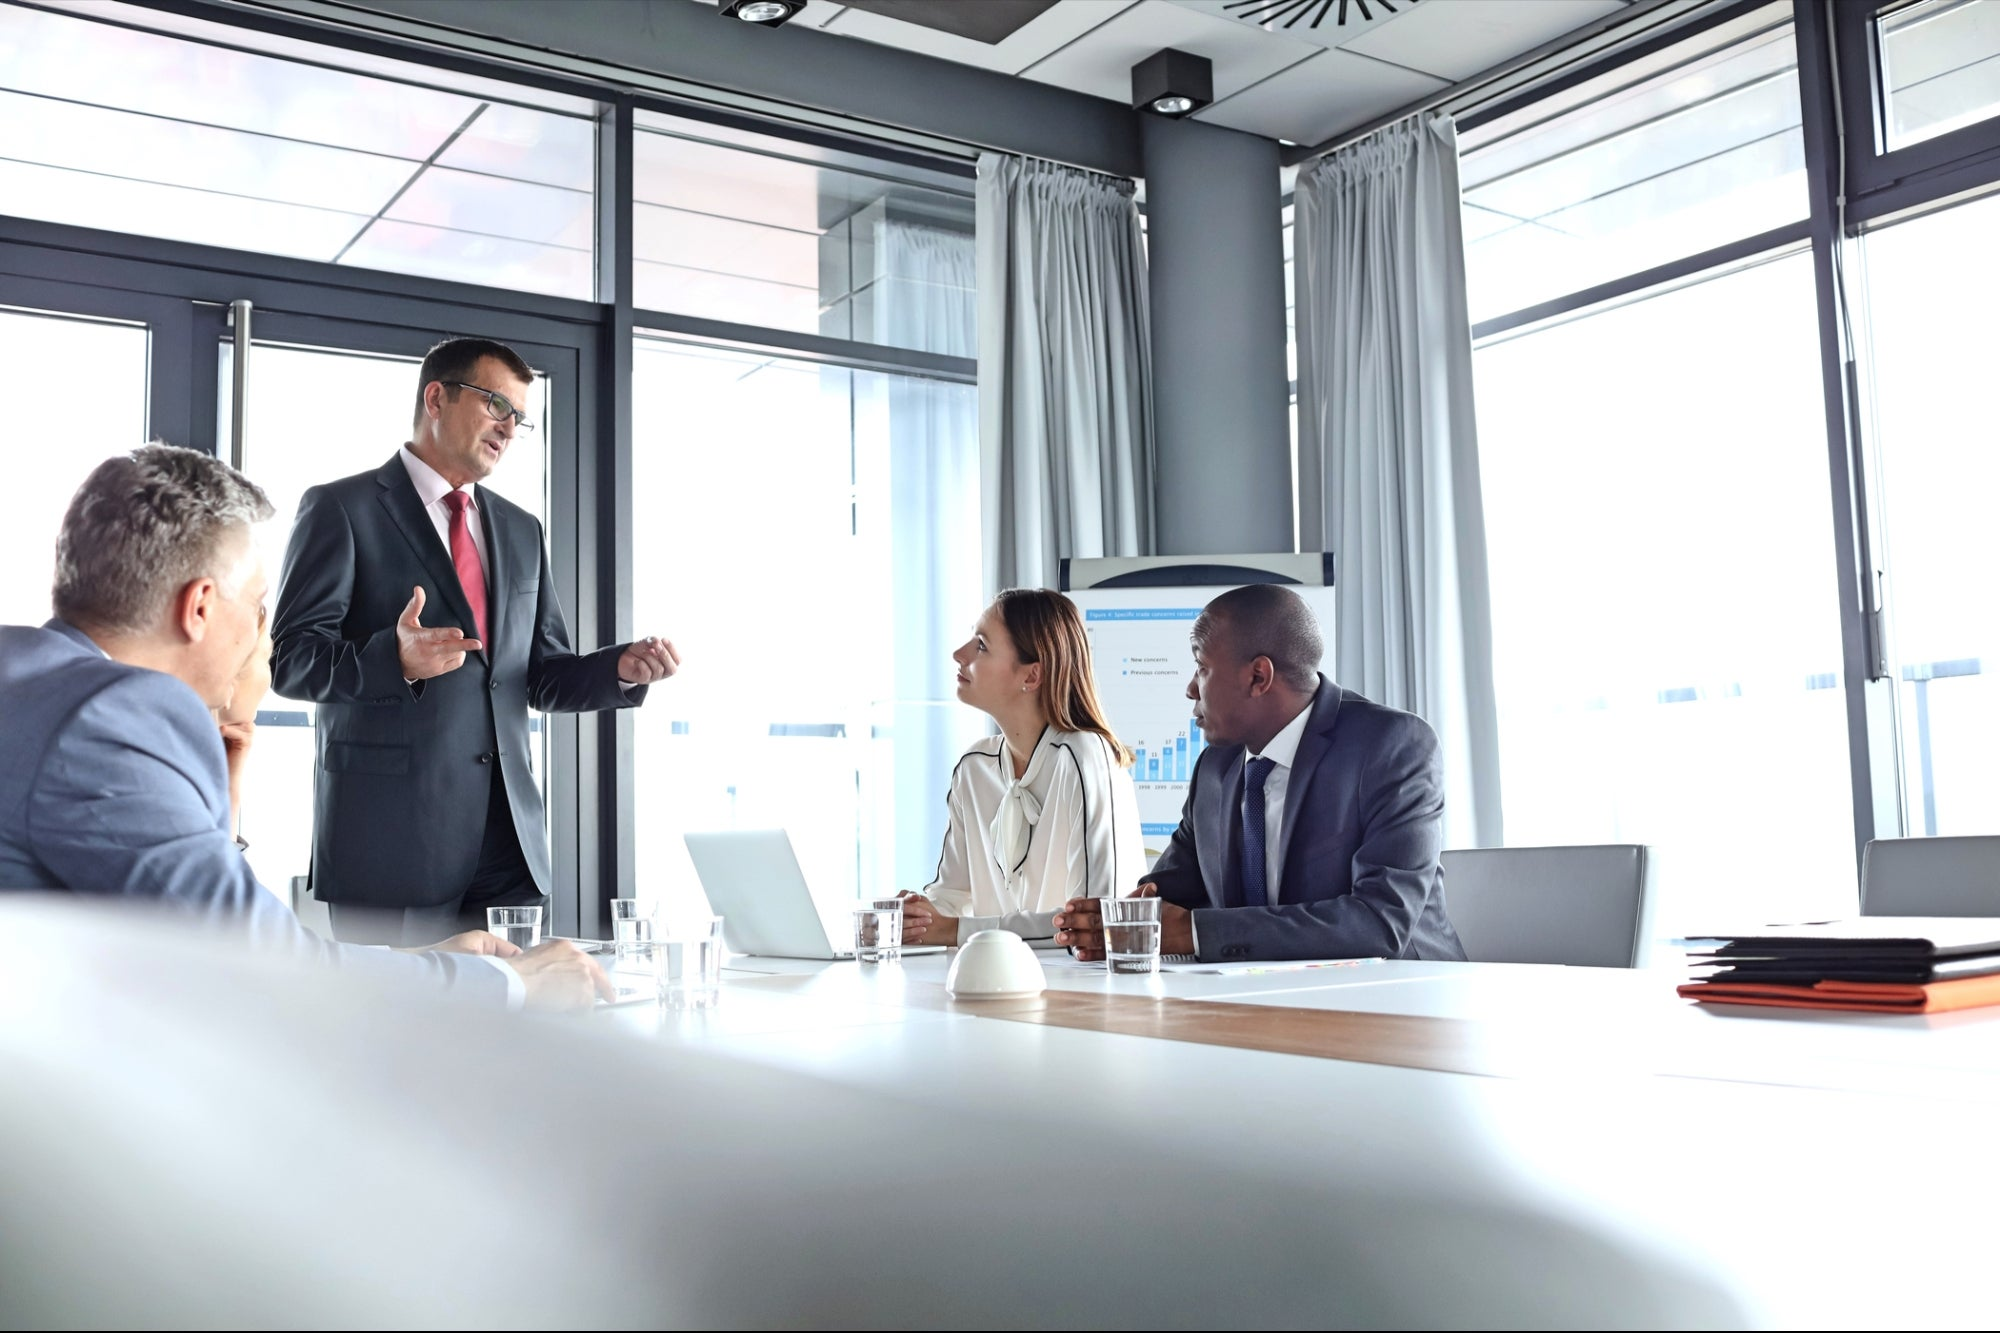 Business Leadership Lessons for Difficult Times